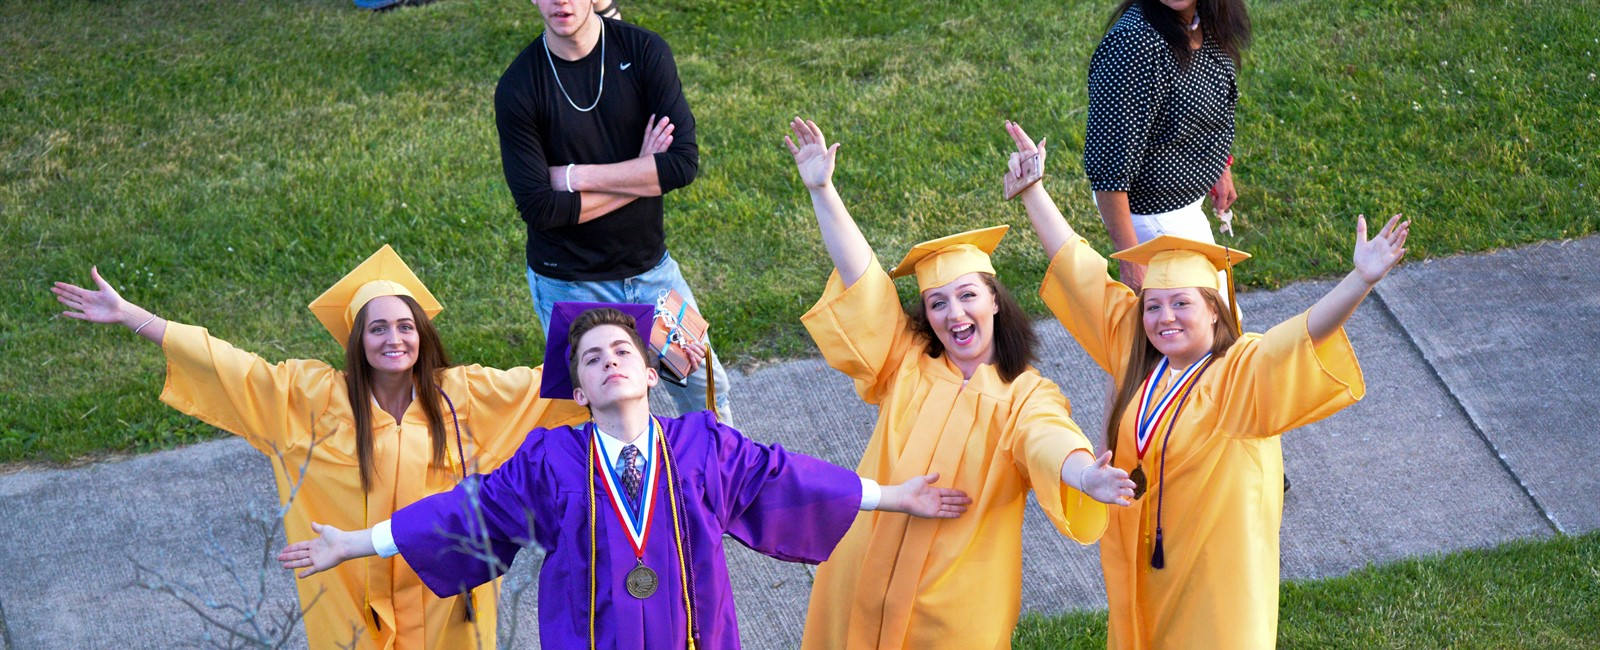 Photo of Sebring Graduates Celebrating